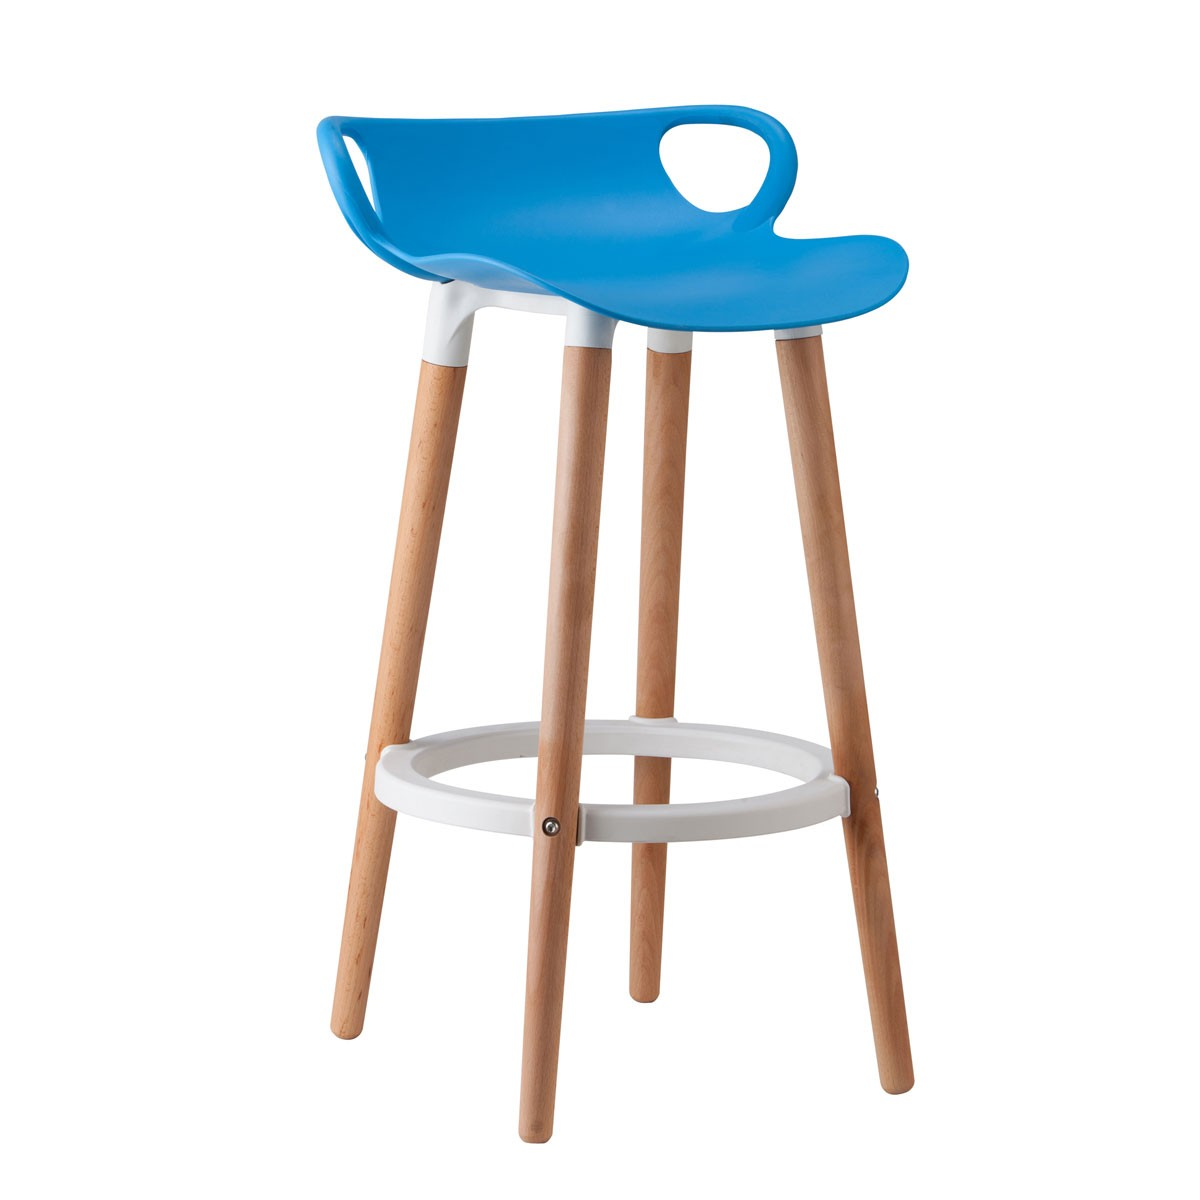 34 4 Quot Height Plastic Bar Stool With Wood Legs Set Of 2